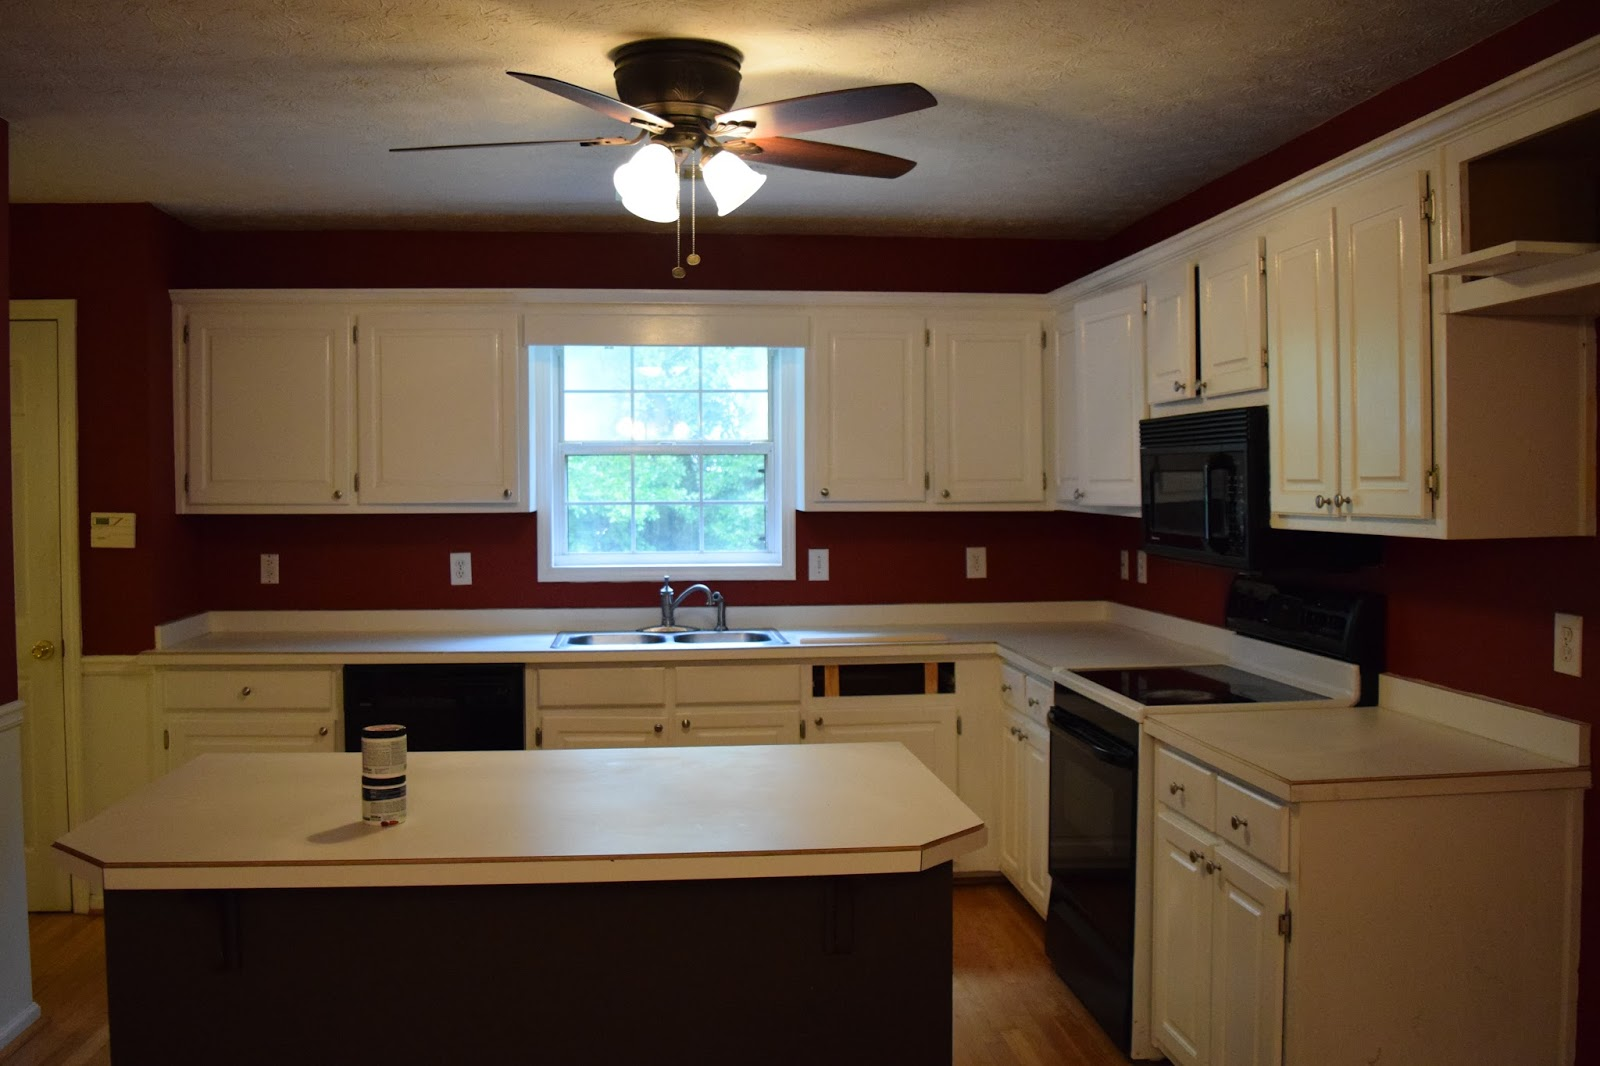 the walls were maroon on top white below the chair rail white laminate counters white cabinets black appliances no refrigerator and a chocolate brown - Maroon Kitchen 2015